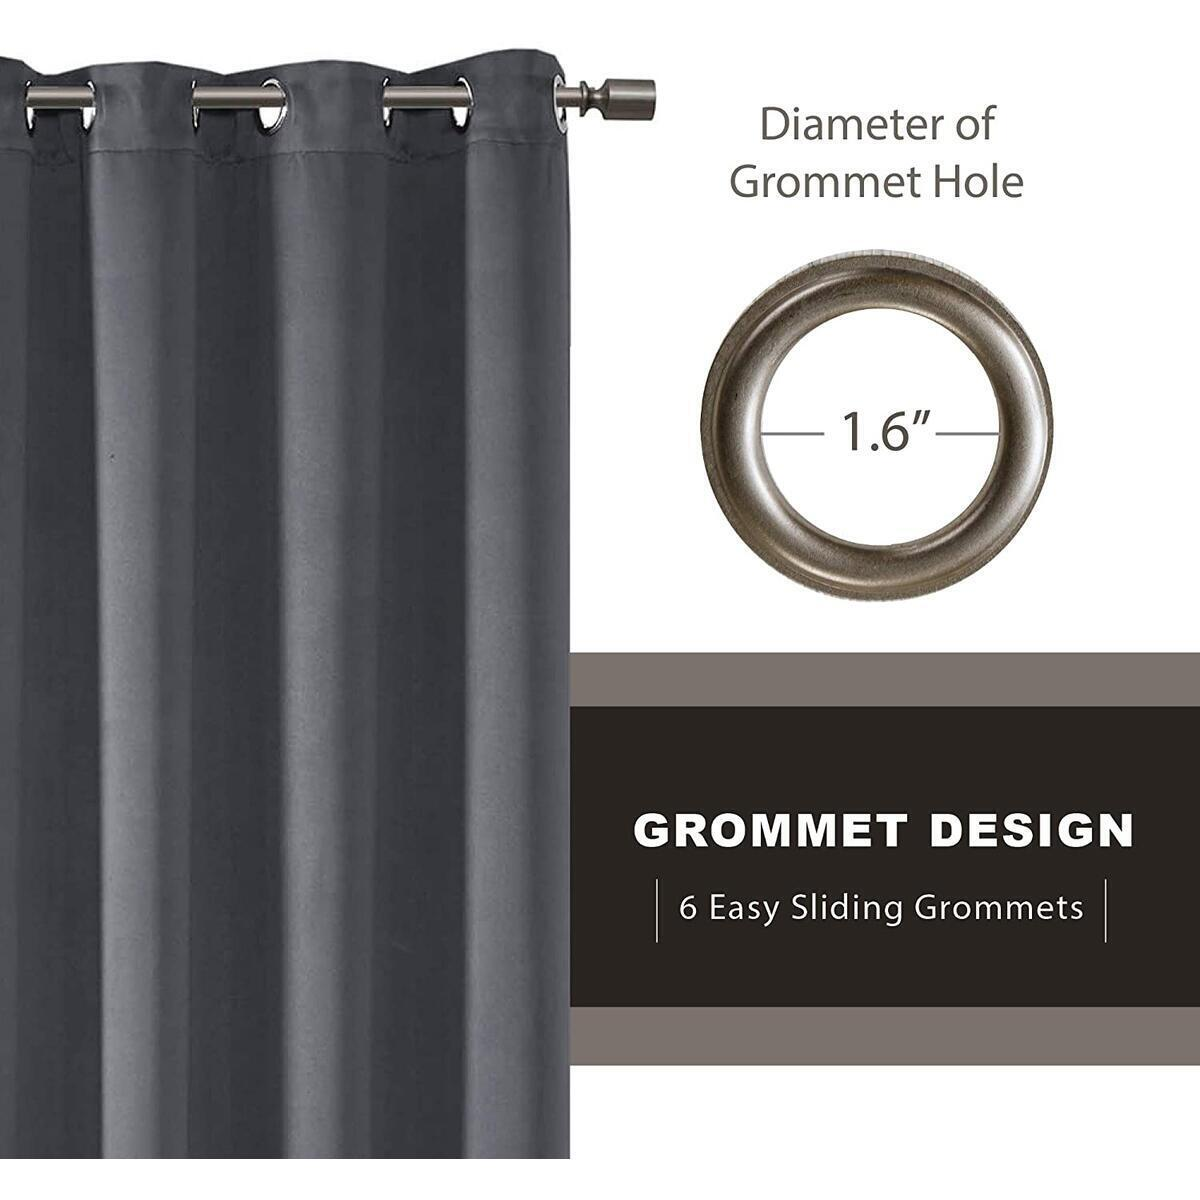 Blackout Curtains for Bedroom | Thermal Insulated Room Darkening Window Treatments W/Grommet Top | Triple Weave | Ideal for Nursery Or Kids Room | Charcoal 52x63-2 Panels